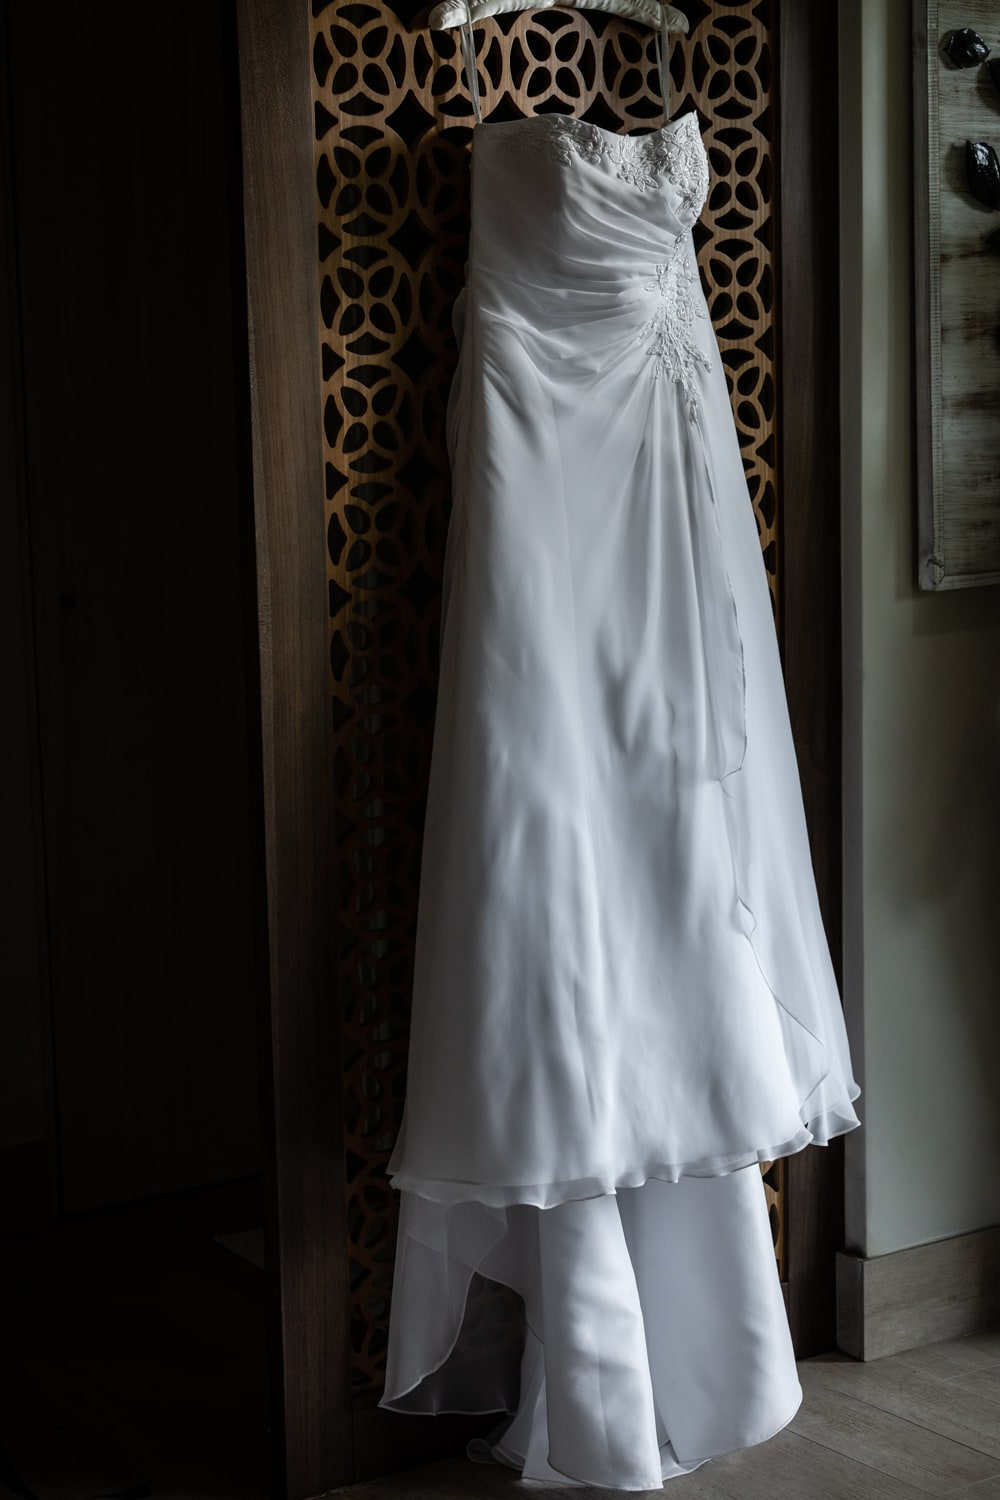 White wedding dress on ornate wooden wall in Secrets Papagayo bridal suite.